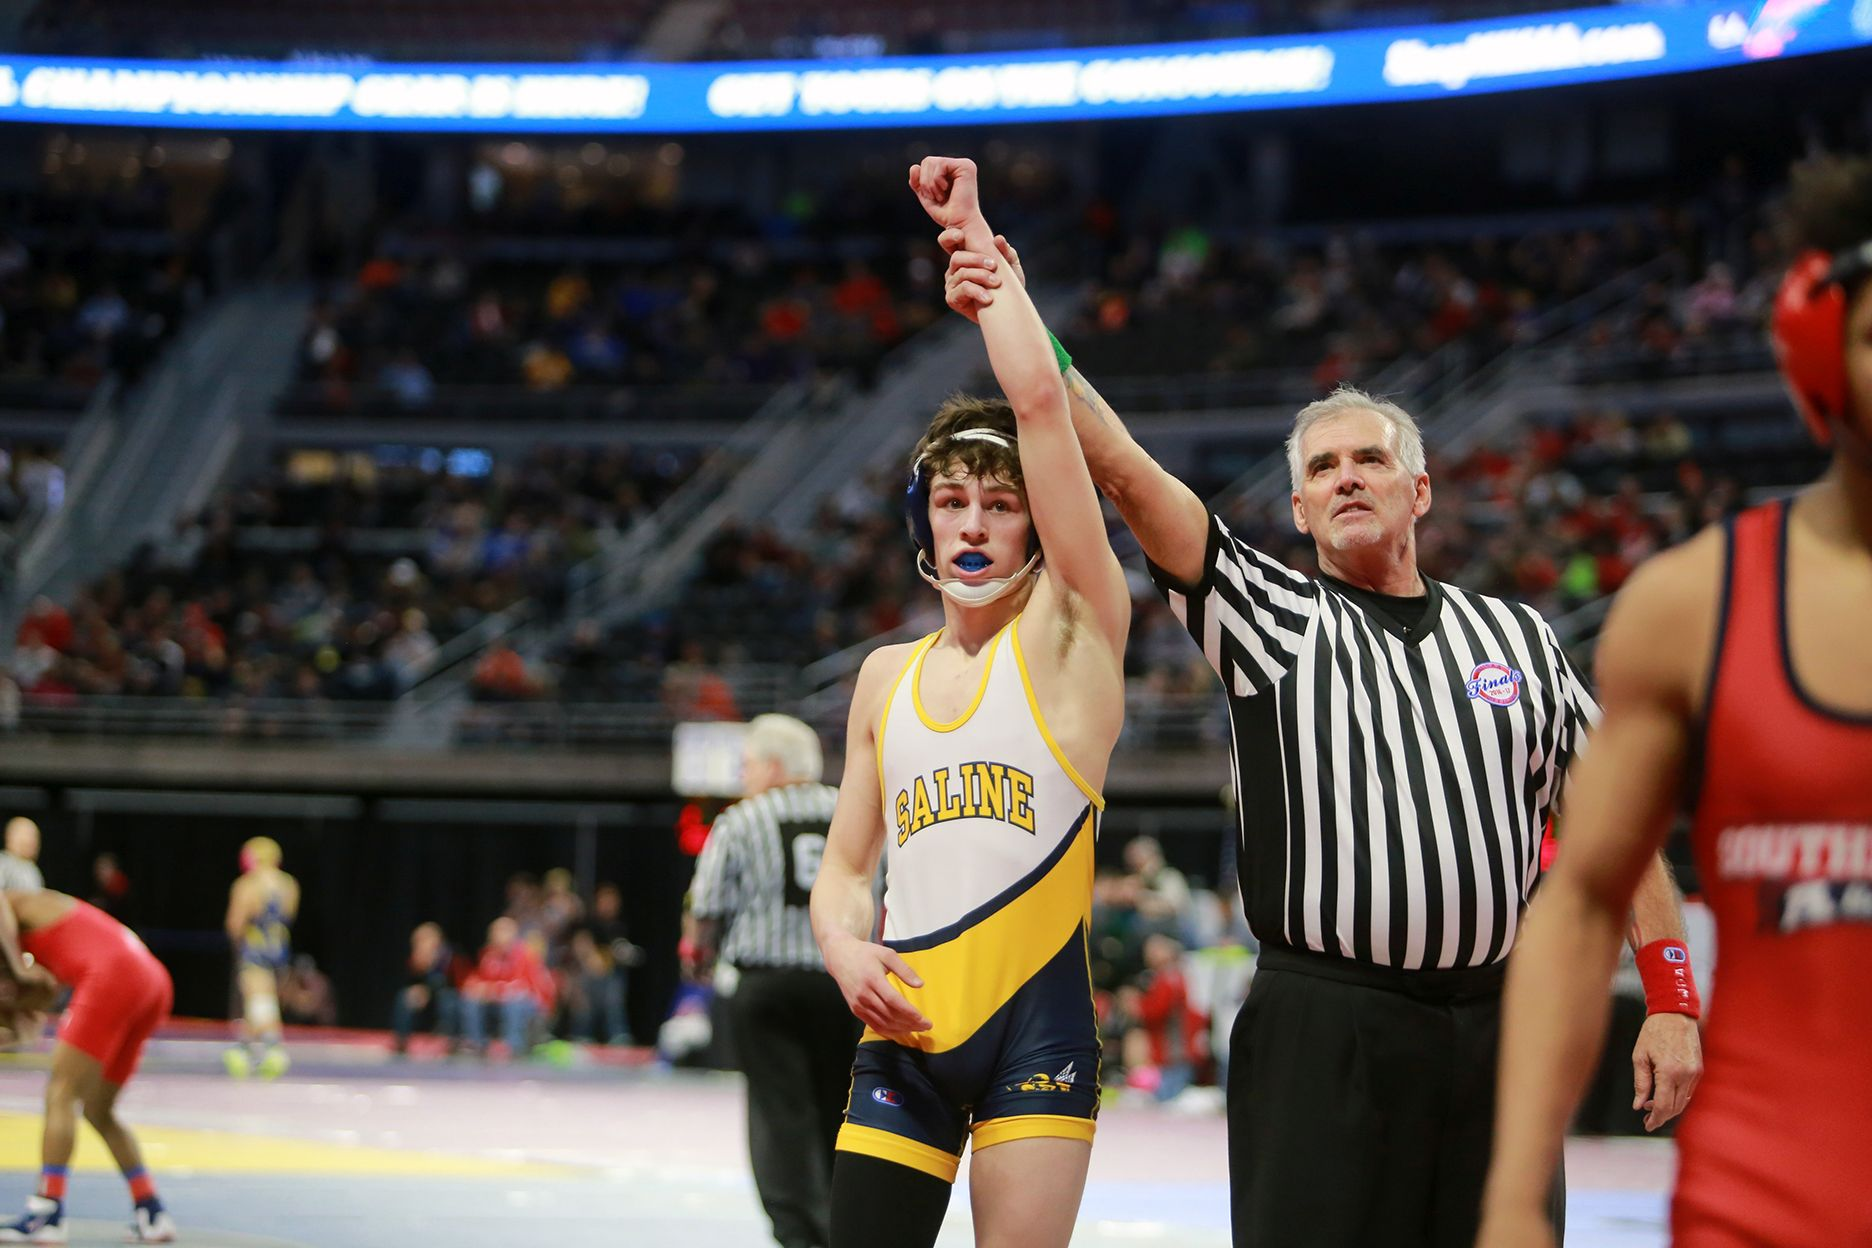 The Saline Post: Poupore 5-0 as Saline Wrestlers Take 3rd at Northville